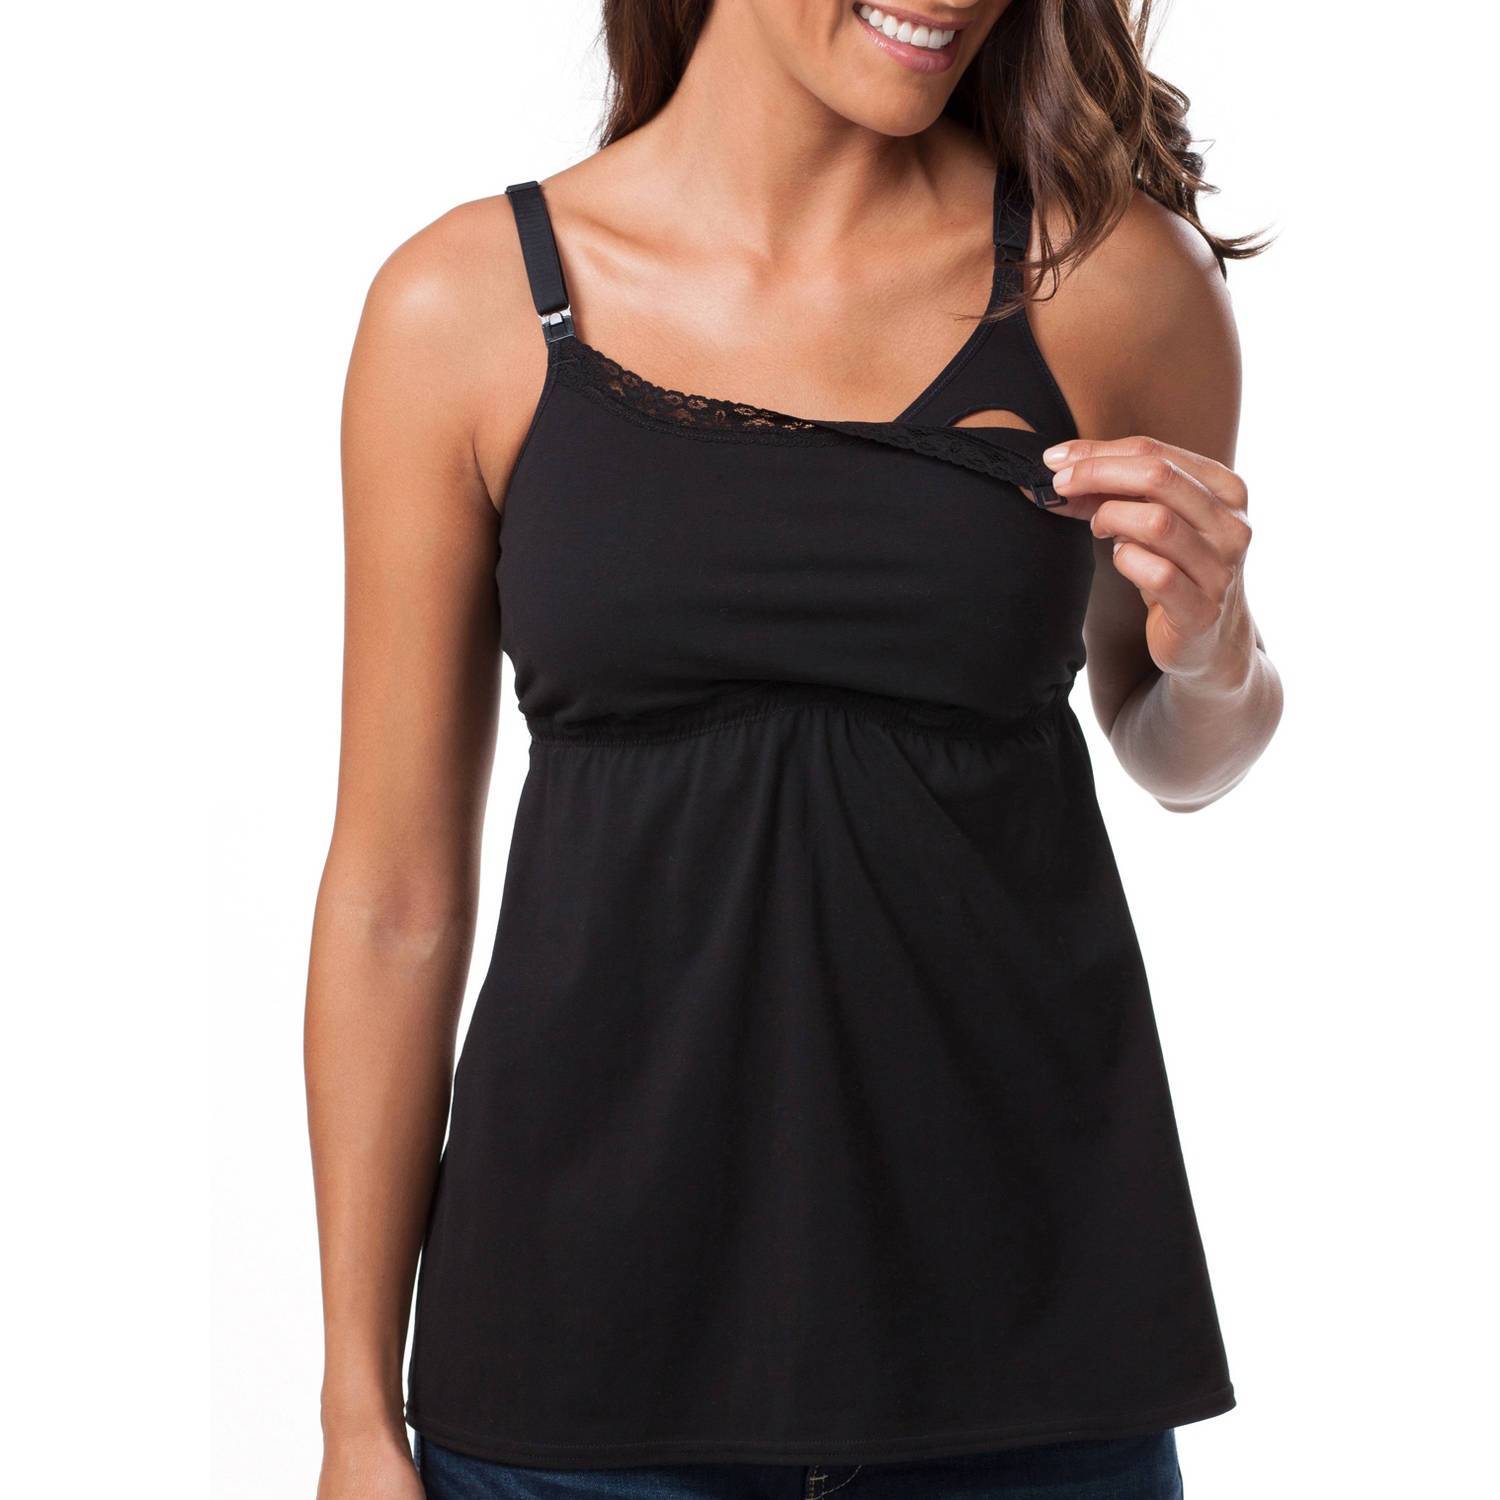 Loving Moments by Leading Lady Maternity Babydoll Nursing Tank with Lace Trim and Full Sling